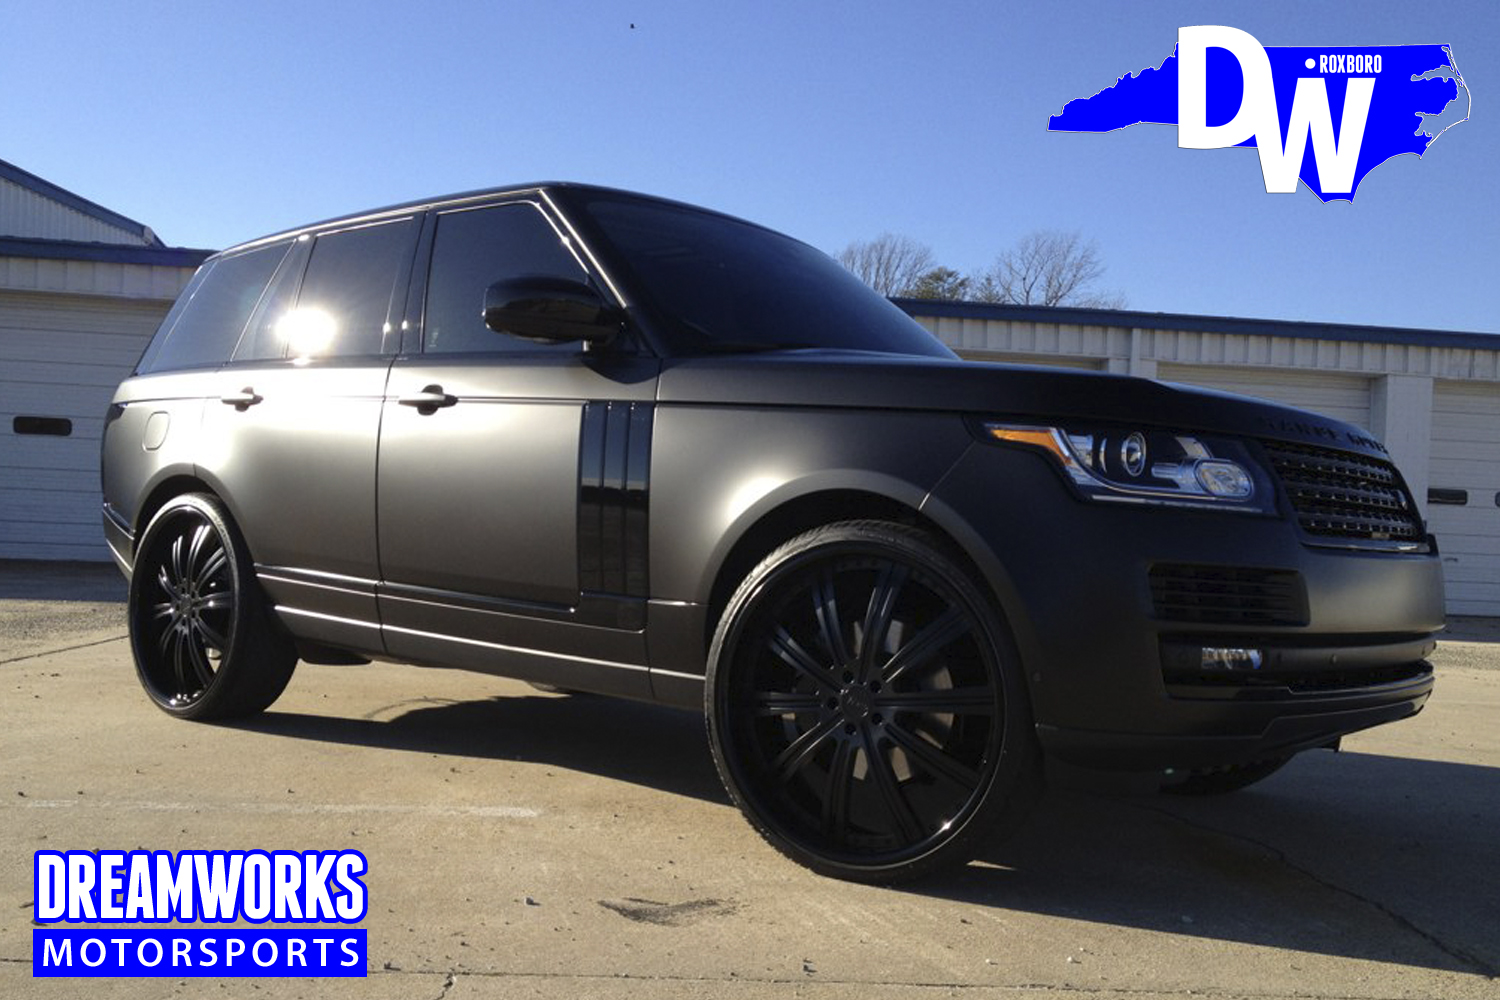 Wesley-Mathews-Range-Rover-Matte-Wrapped-By-Dreamworks-Motorsports-19.jpg